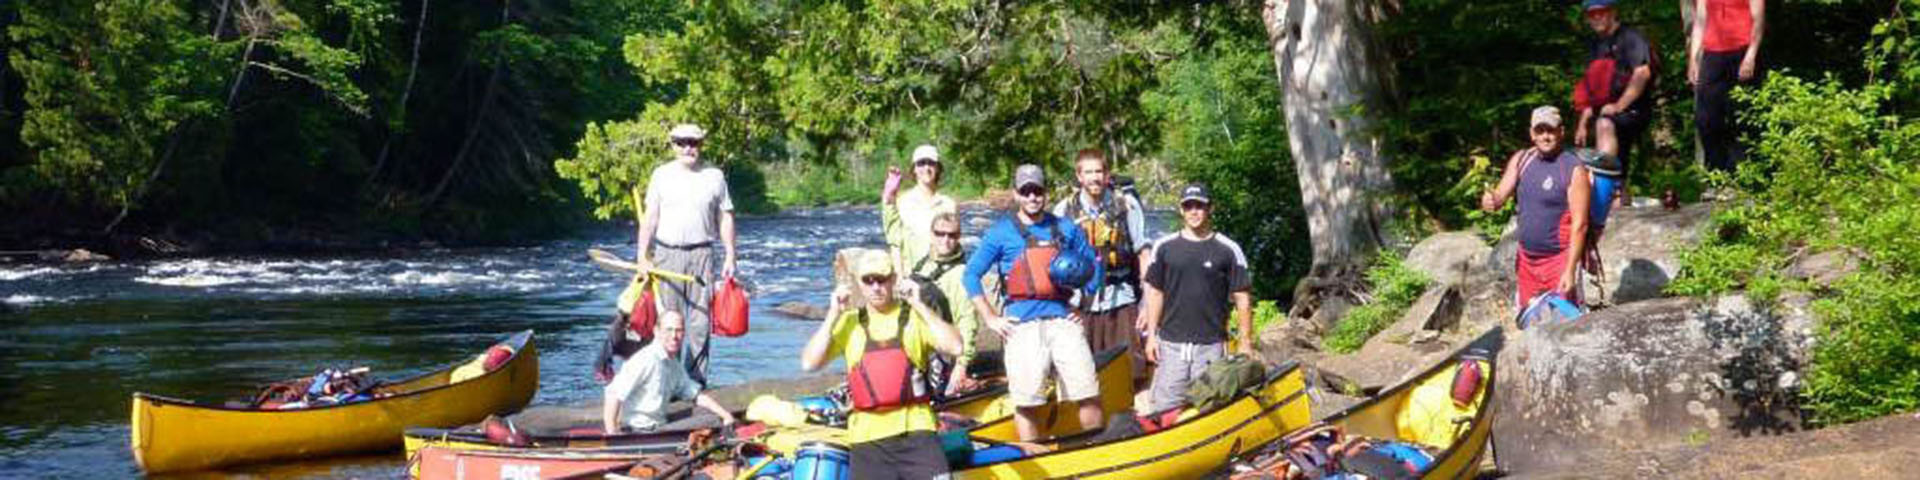 Noire River 7 Day Canoe Trip by Black Feather - Image 276